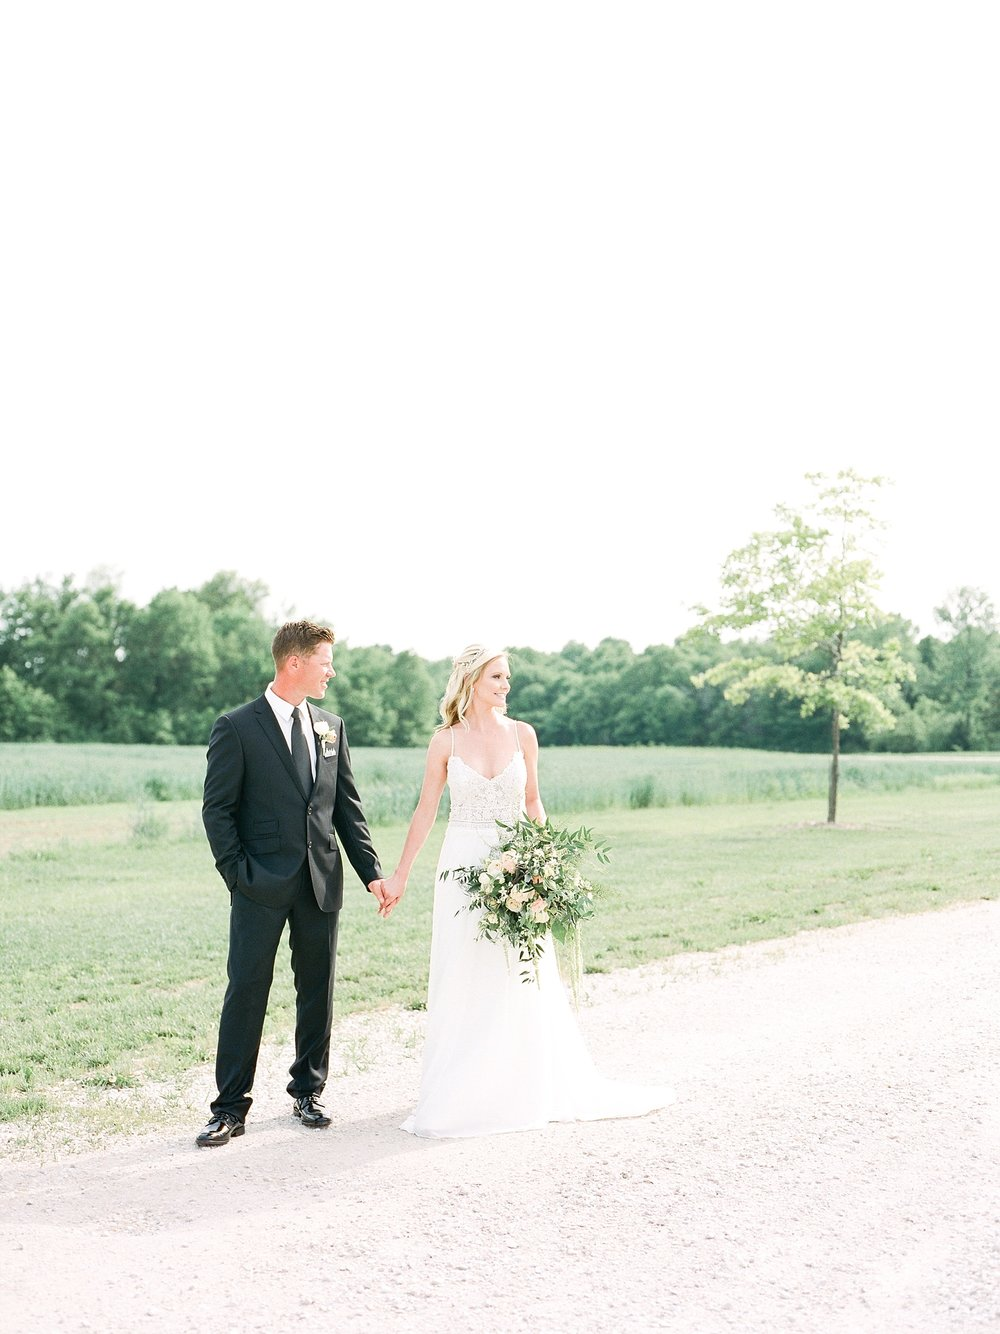 Textural Organic Wedding in All White Venue by Kelsi Kliethermes Wedding Photographer - Missouri, Midwest, and Destinations_0060.jpg